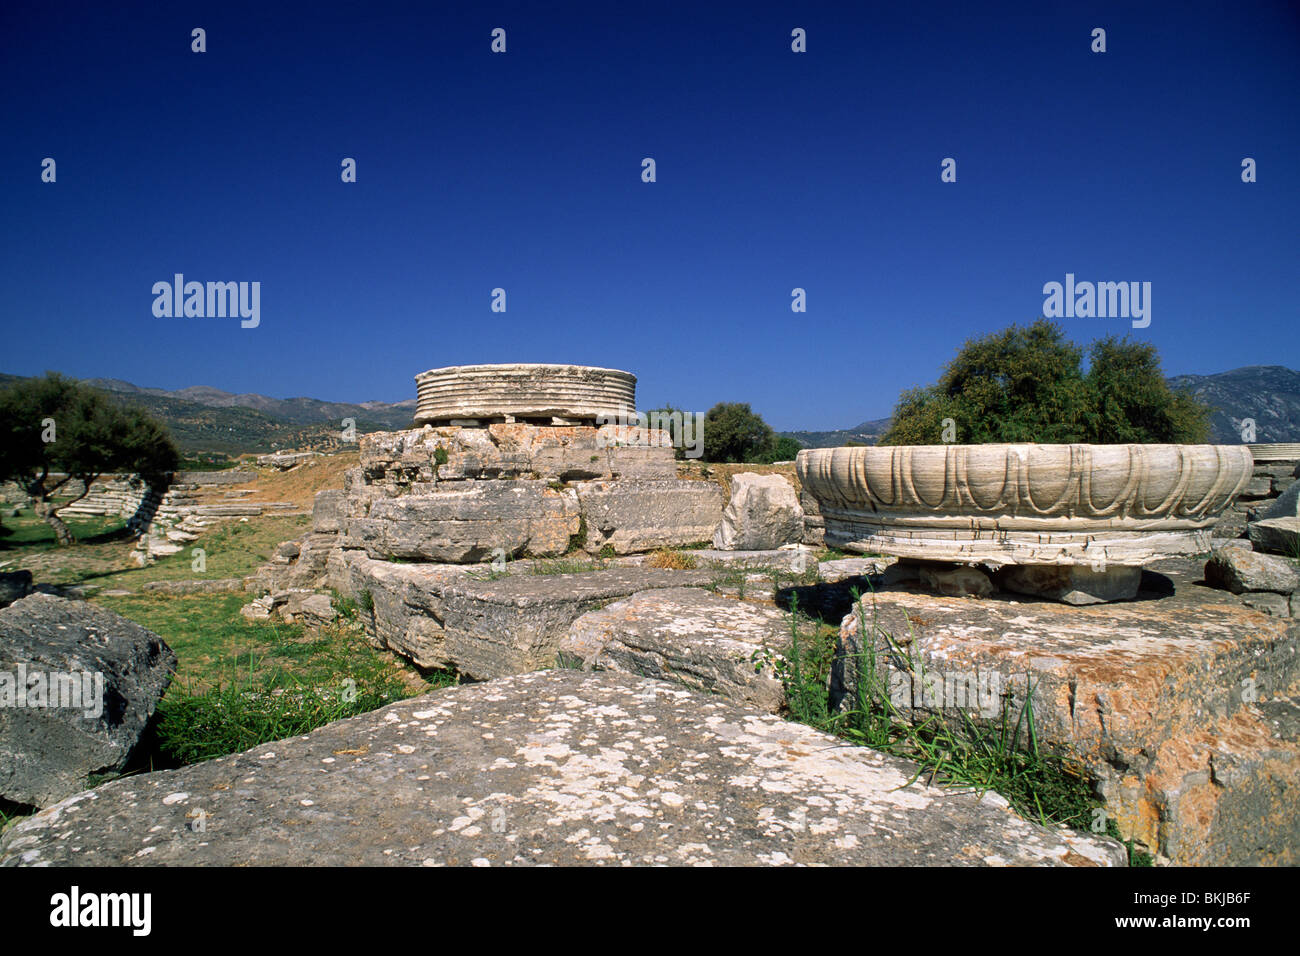 greece, northeastern aegean islands, samos, heraion, hera's temple Stock Photo